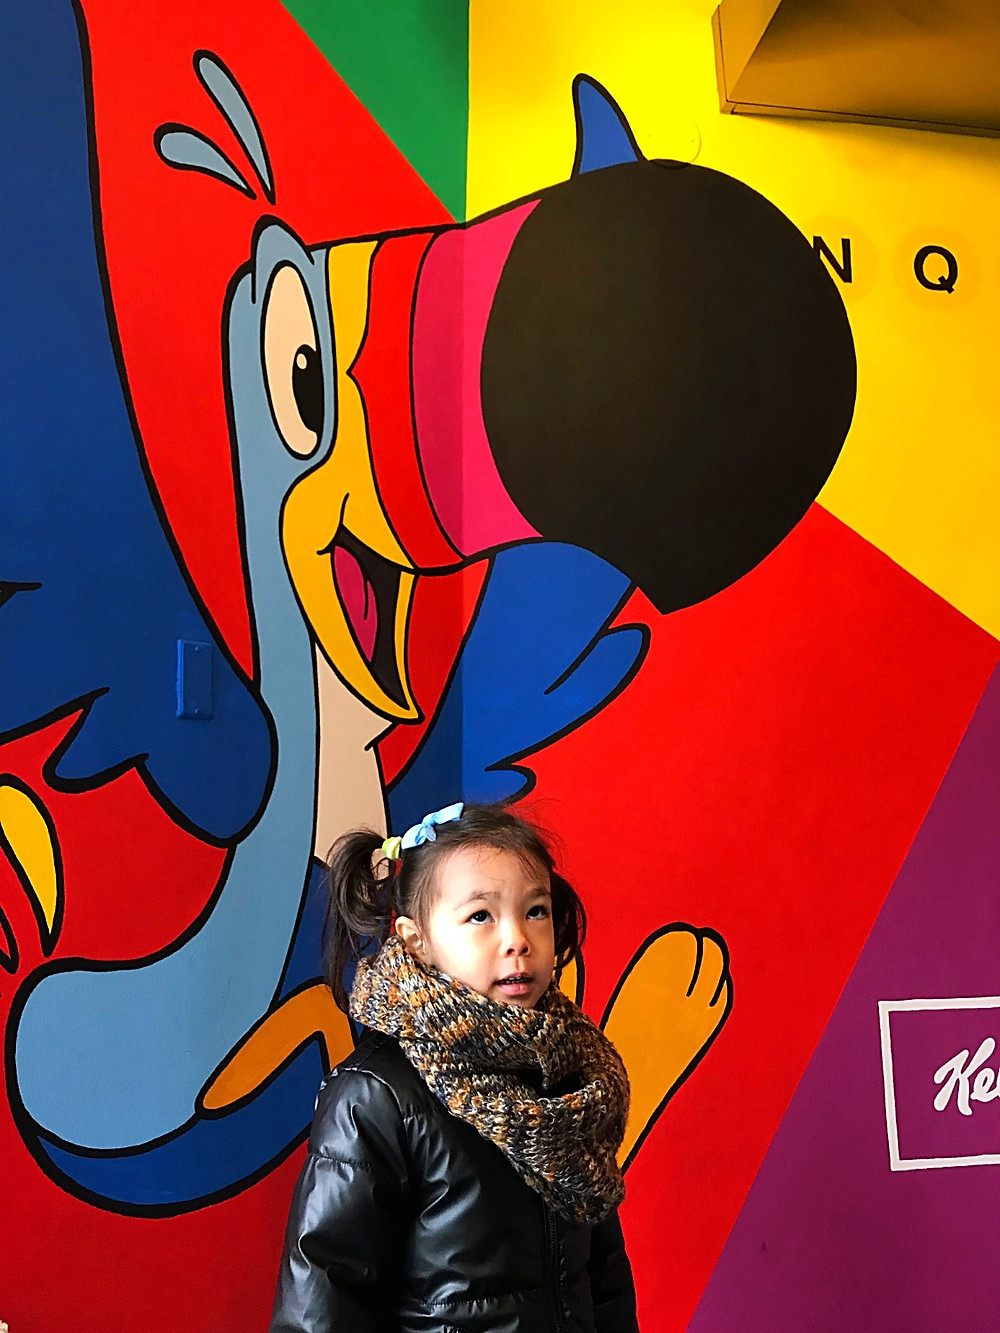 Kellogg's Cafe, Kellogg's NYC. Curious G and Me, Cereal cafe, Winter indoor fun guide for kids, Curious G and Me